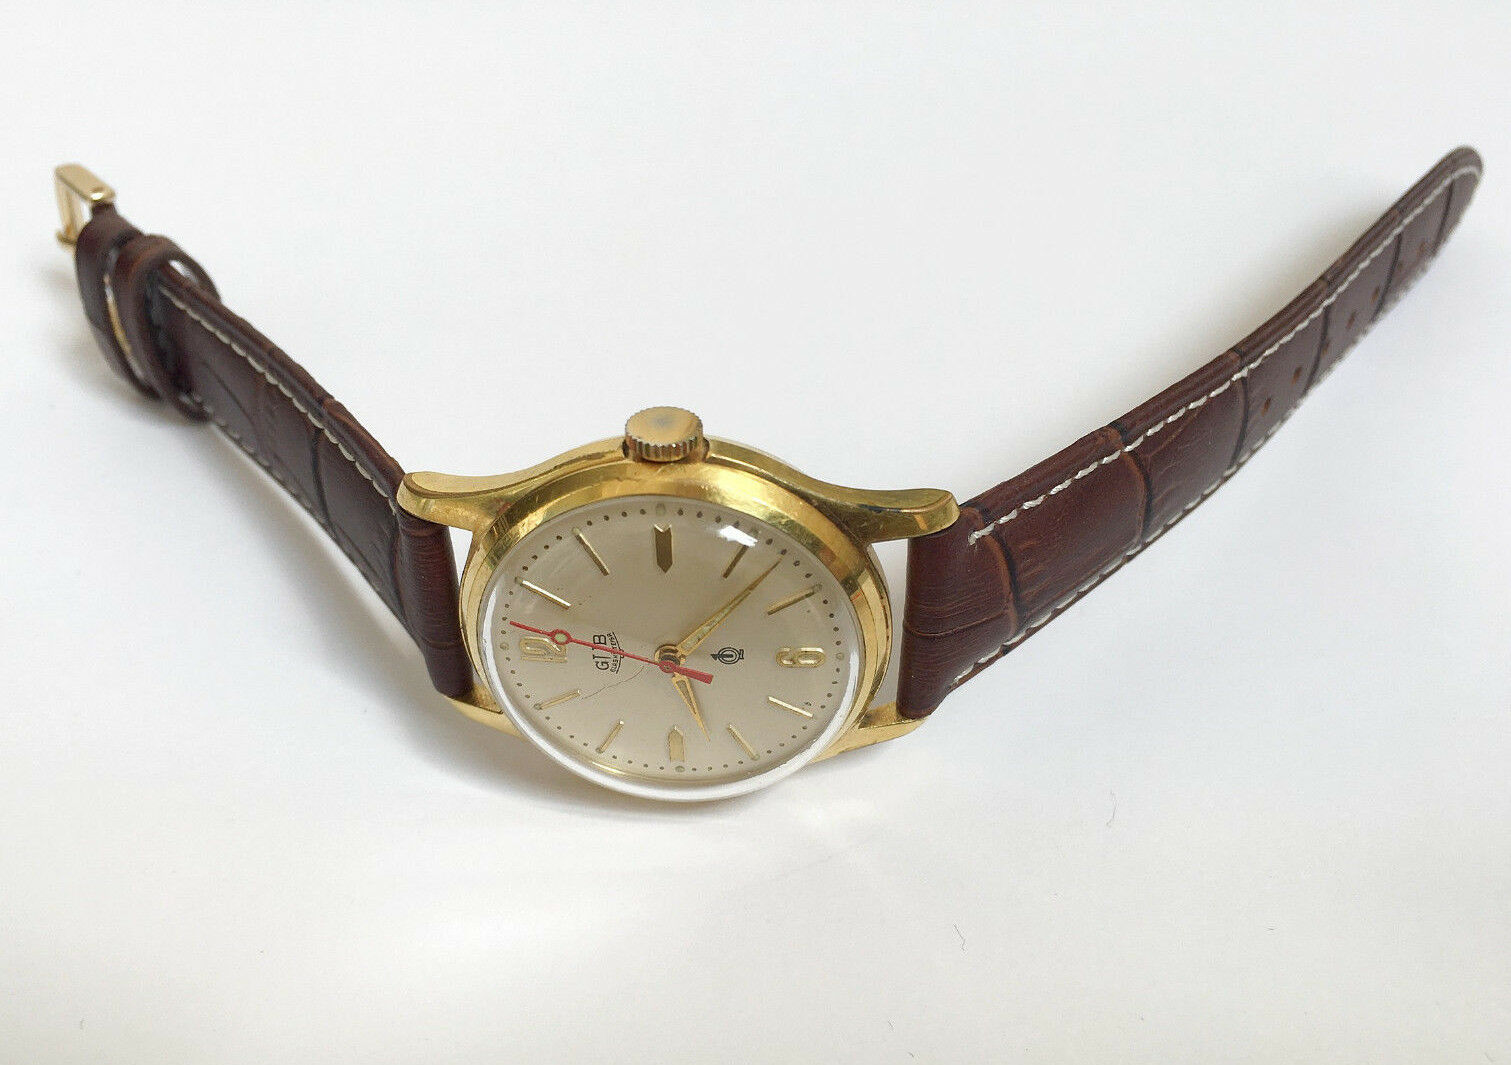 Vintage Rare GLASHUTTE GUB Q1 Chronometre cal. 60.3 Mechanical Germany Watch image 7